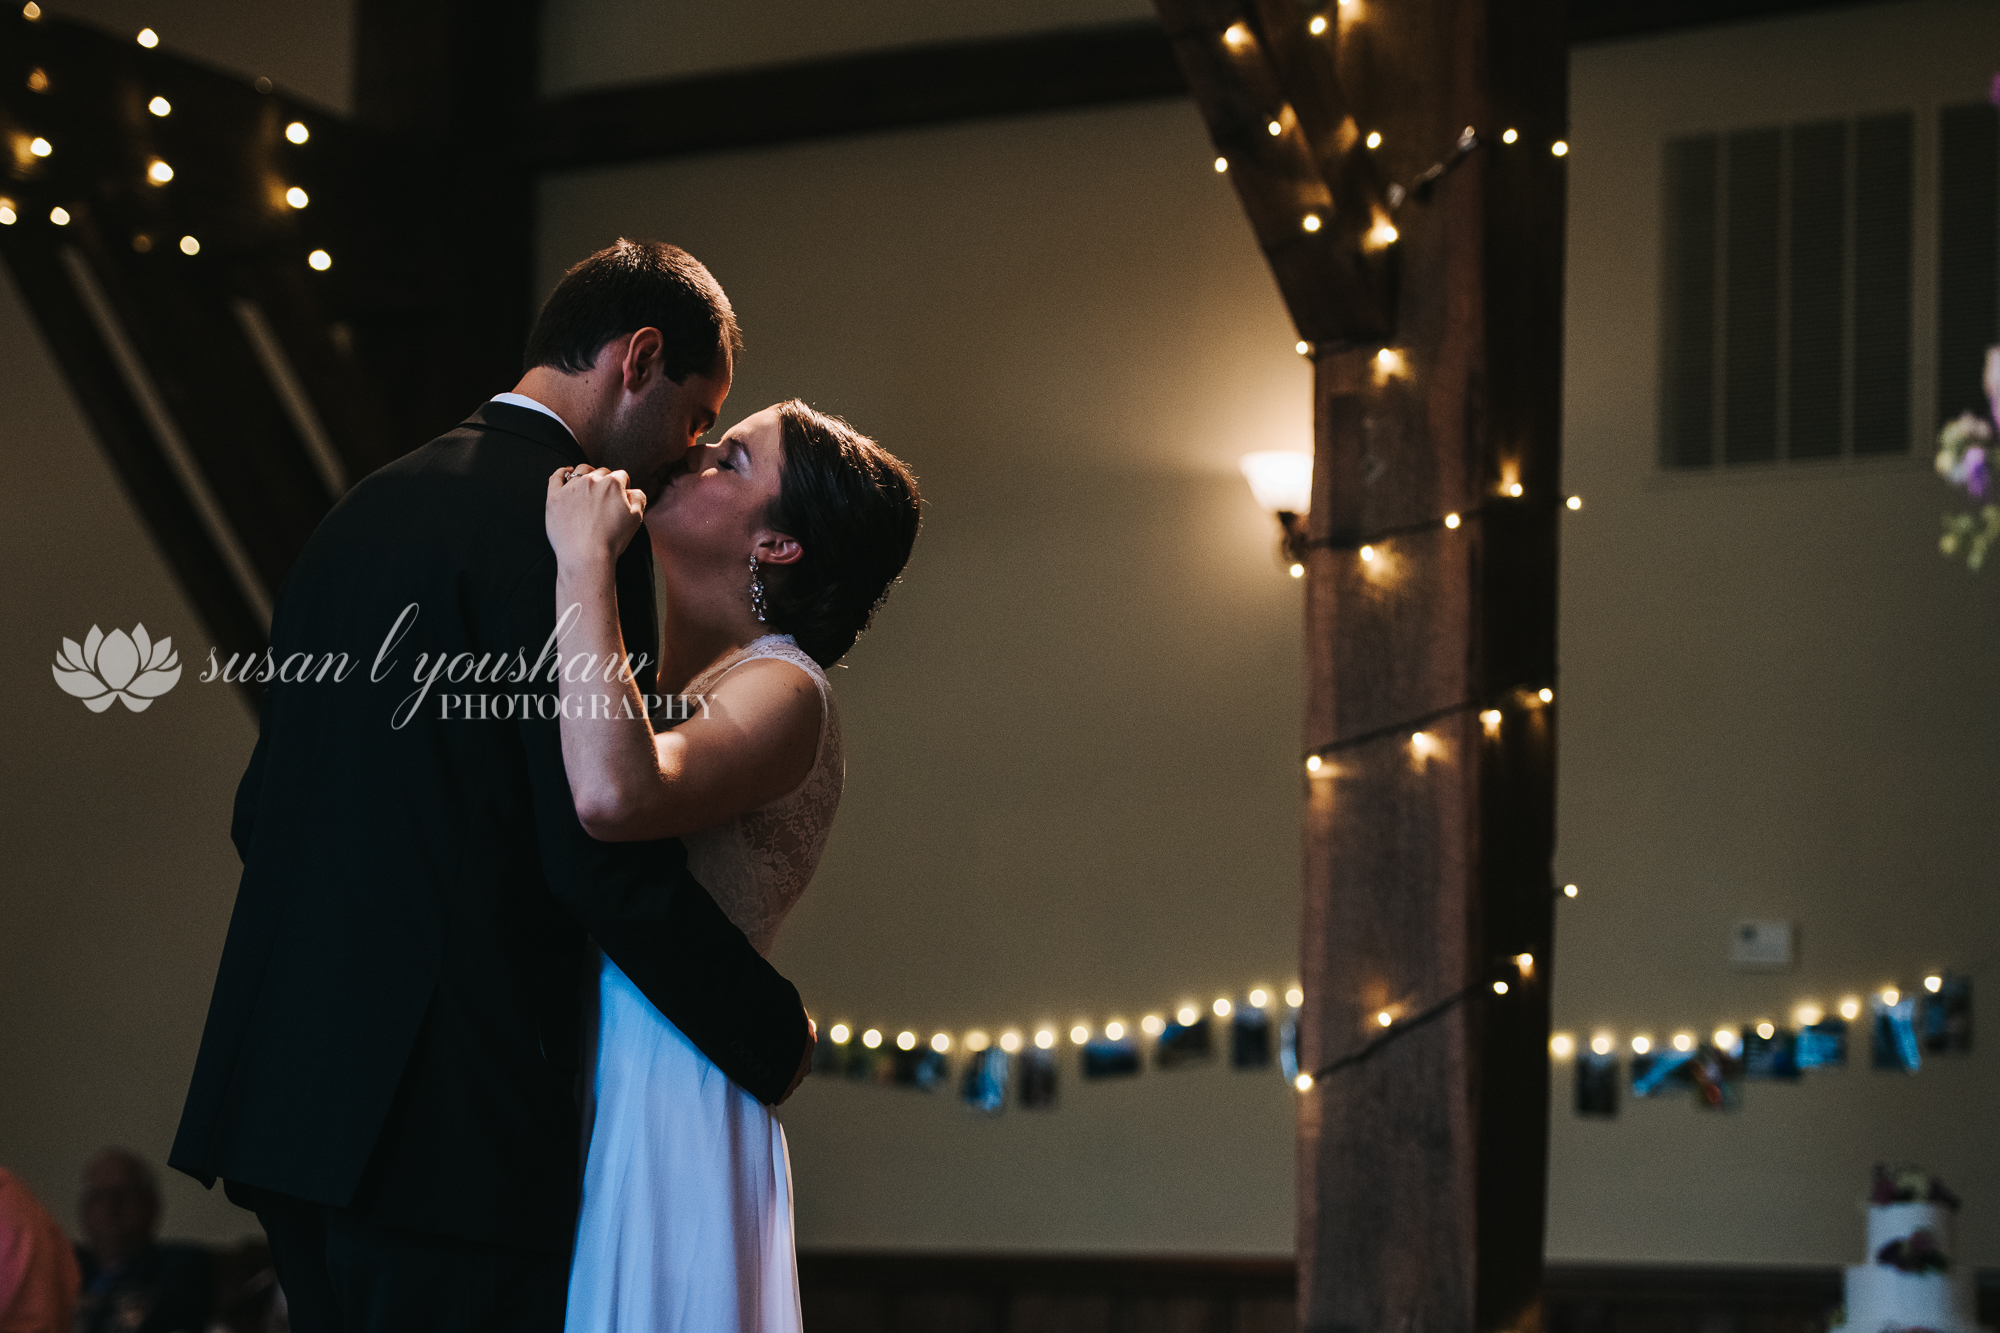 Adena and  Erik Wedding 05-17-2019 SLY Photography-99.jpg